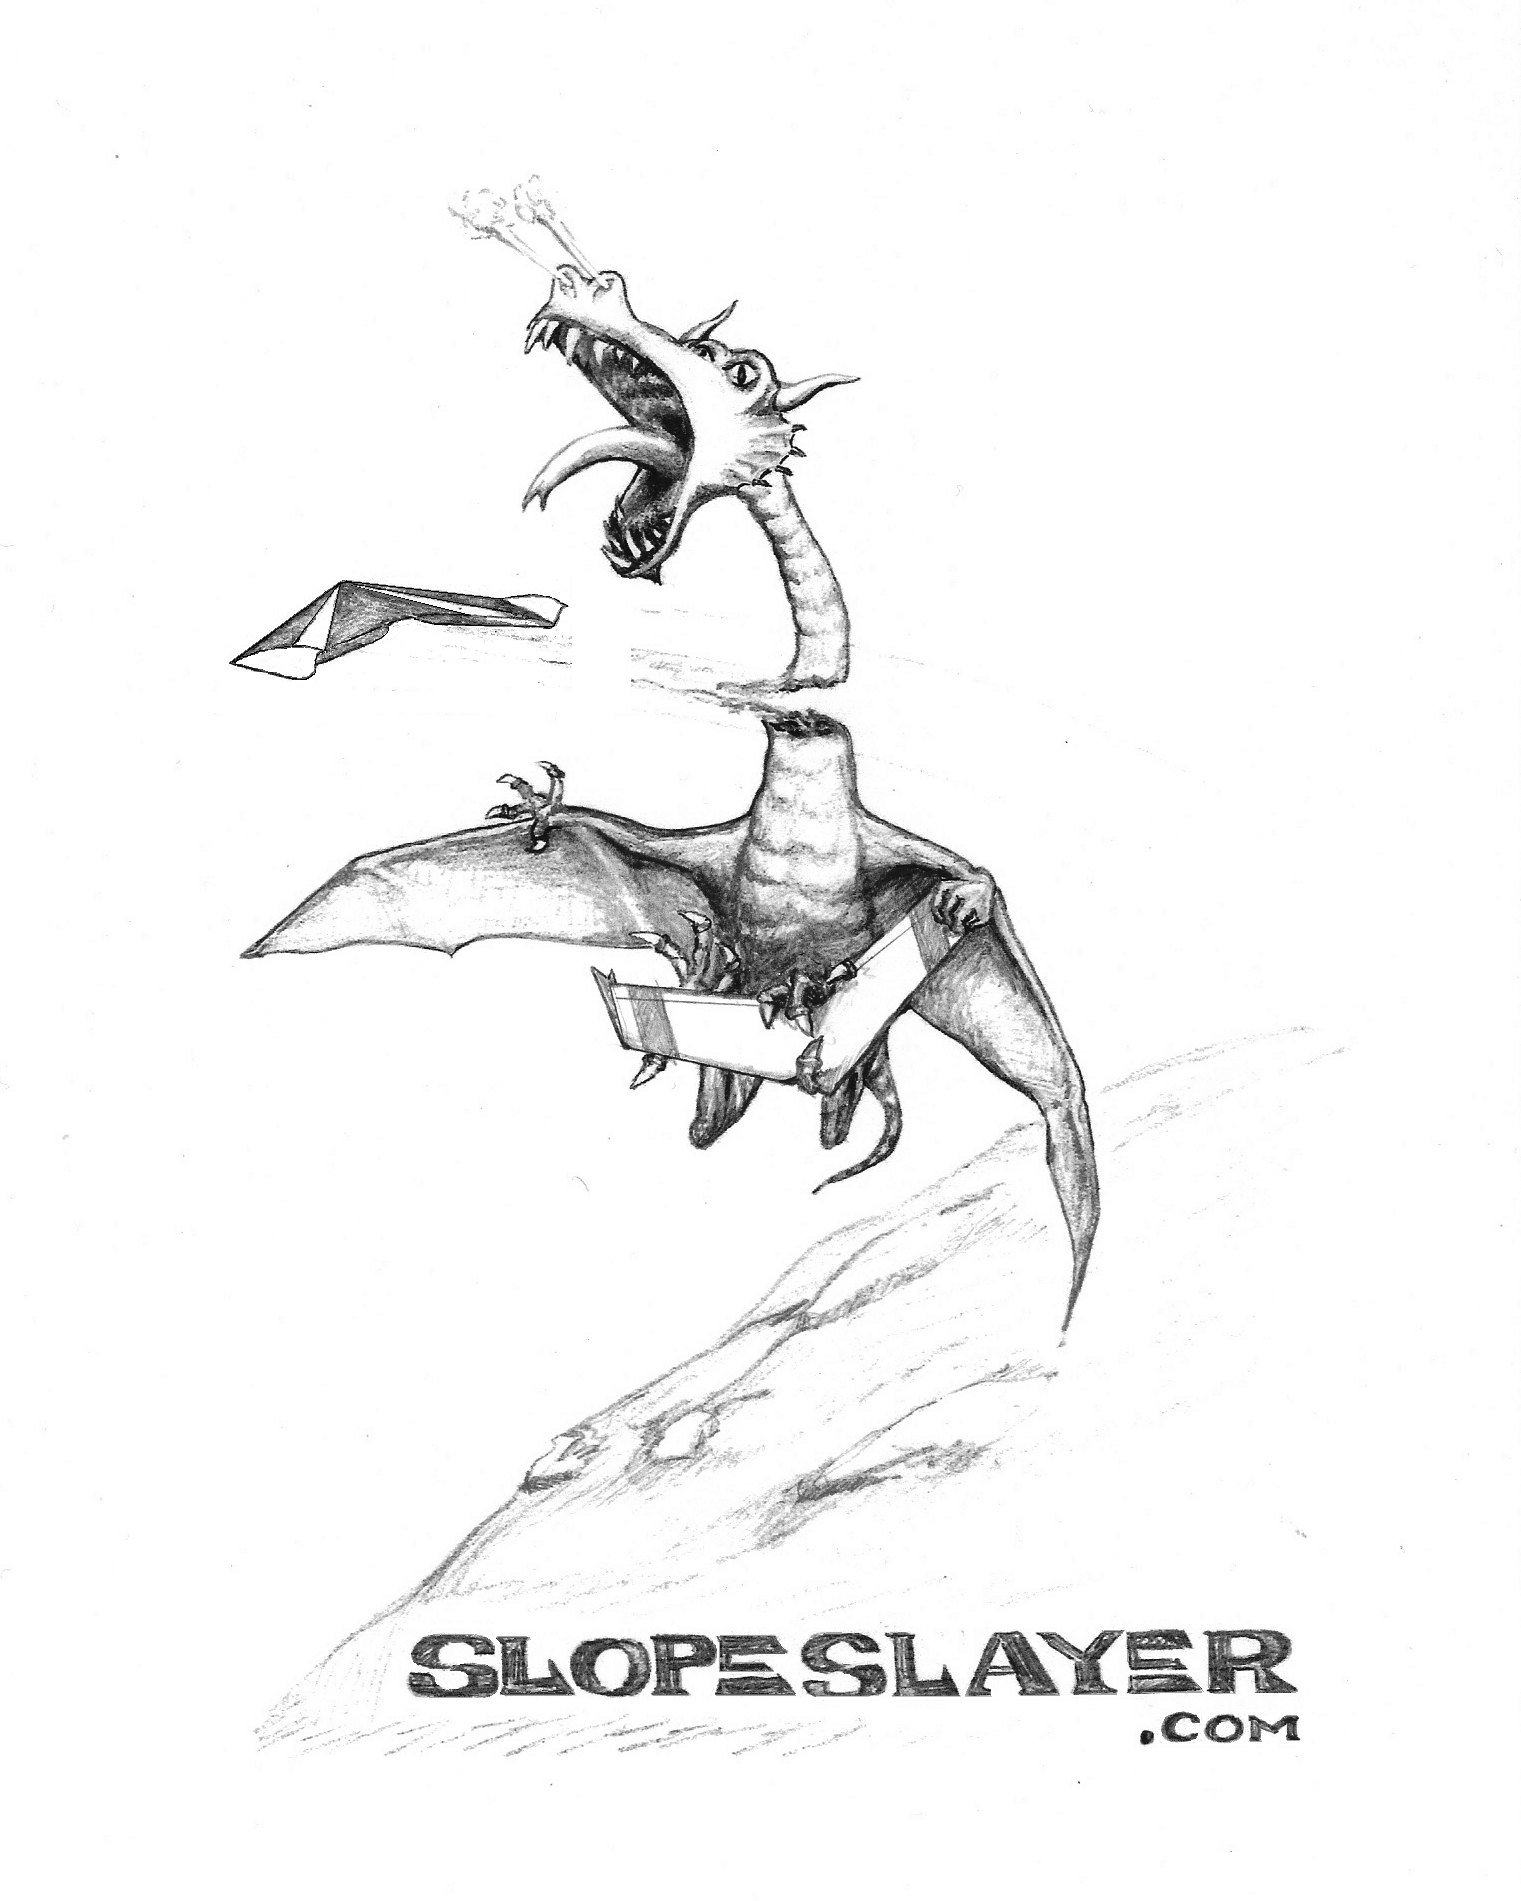 Slopeslayer